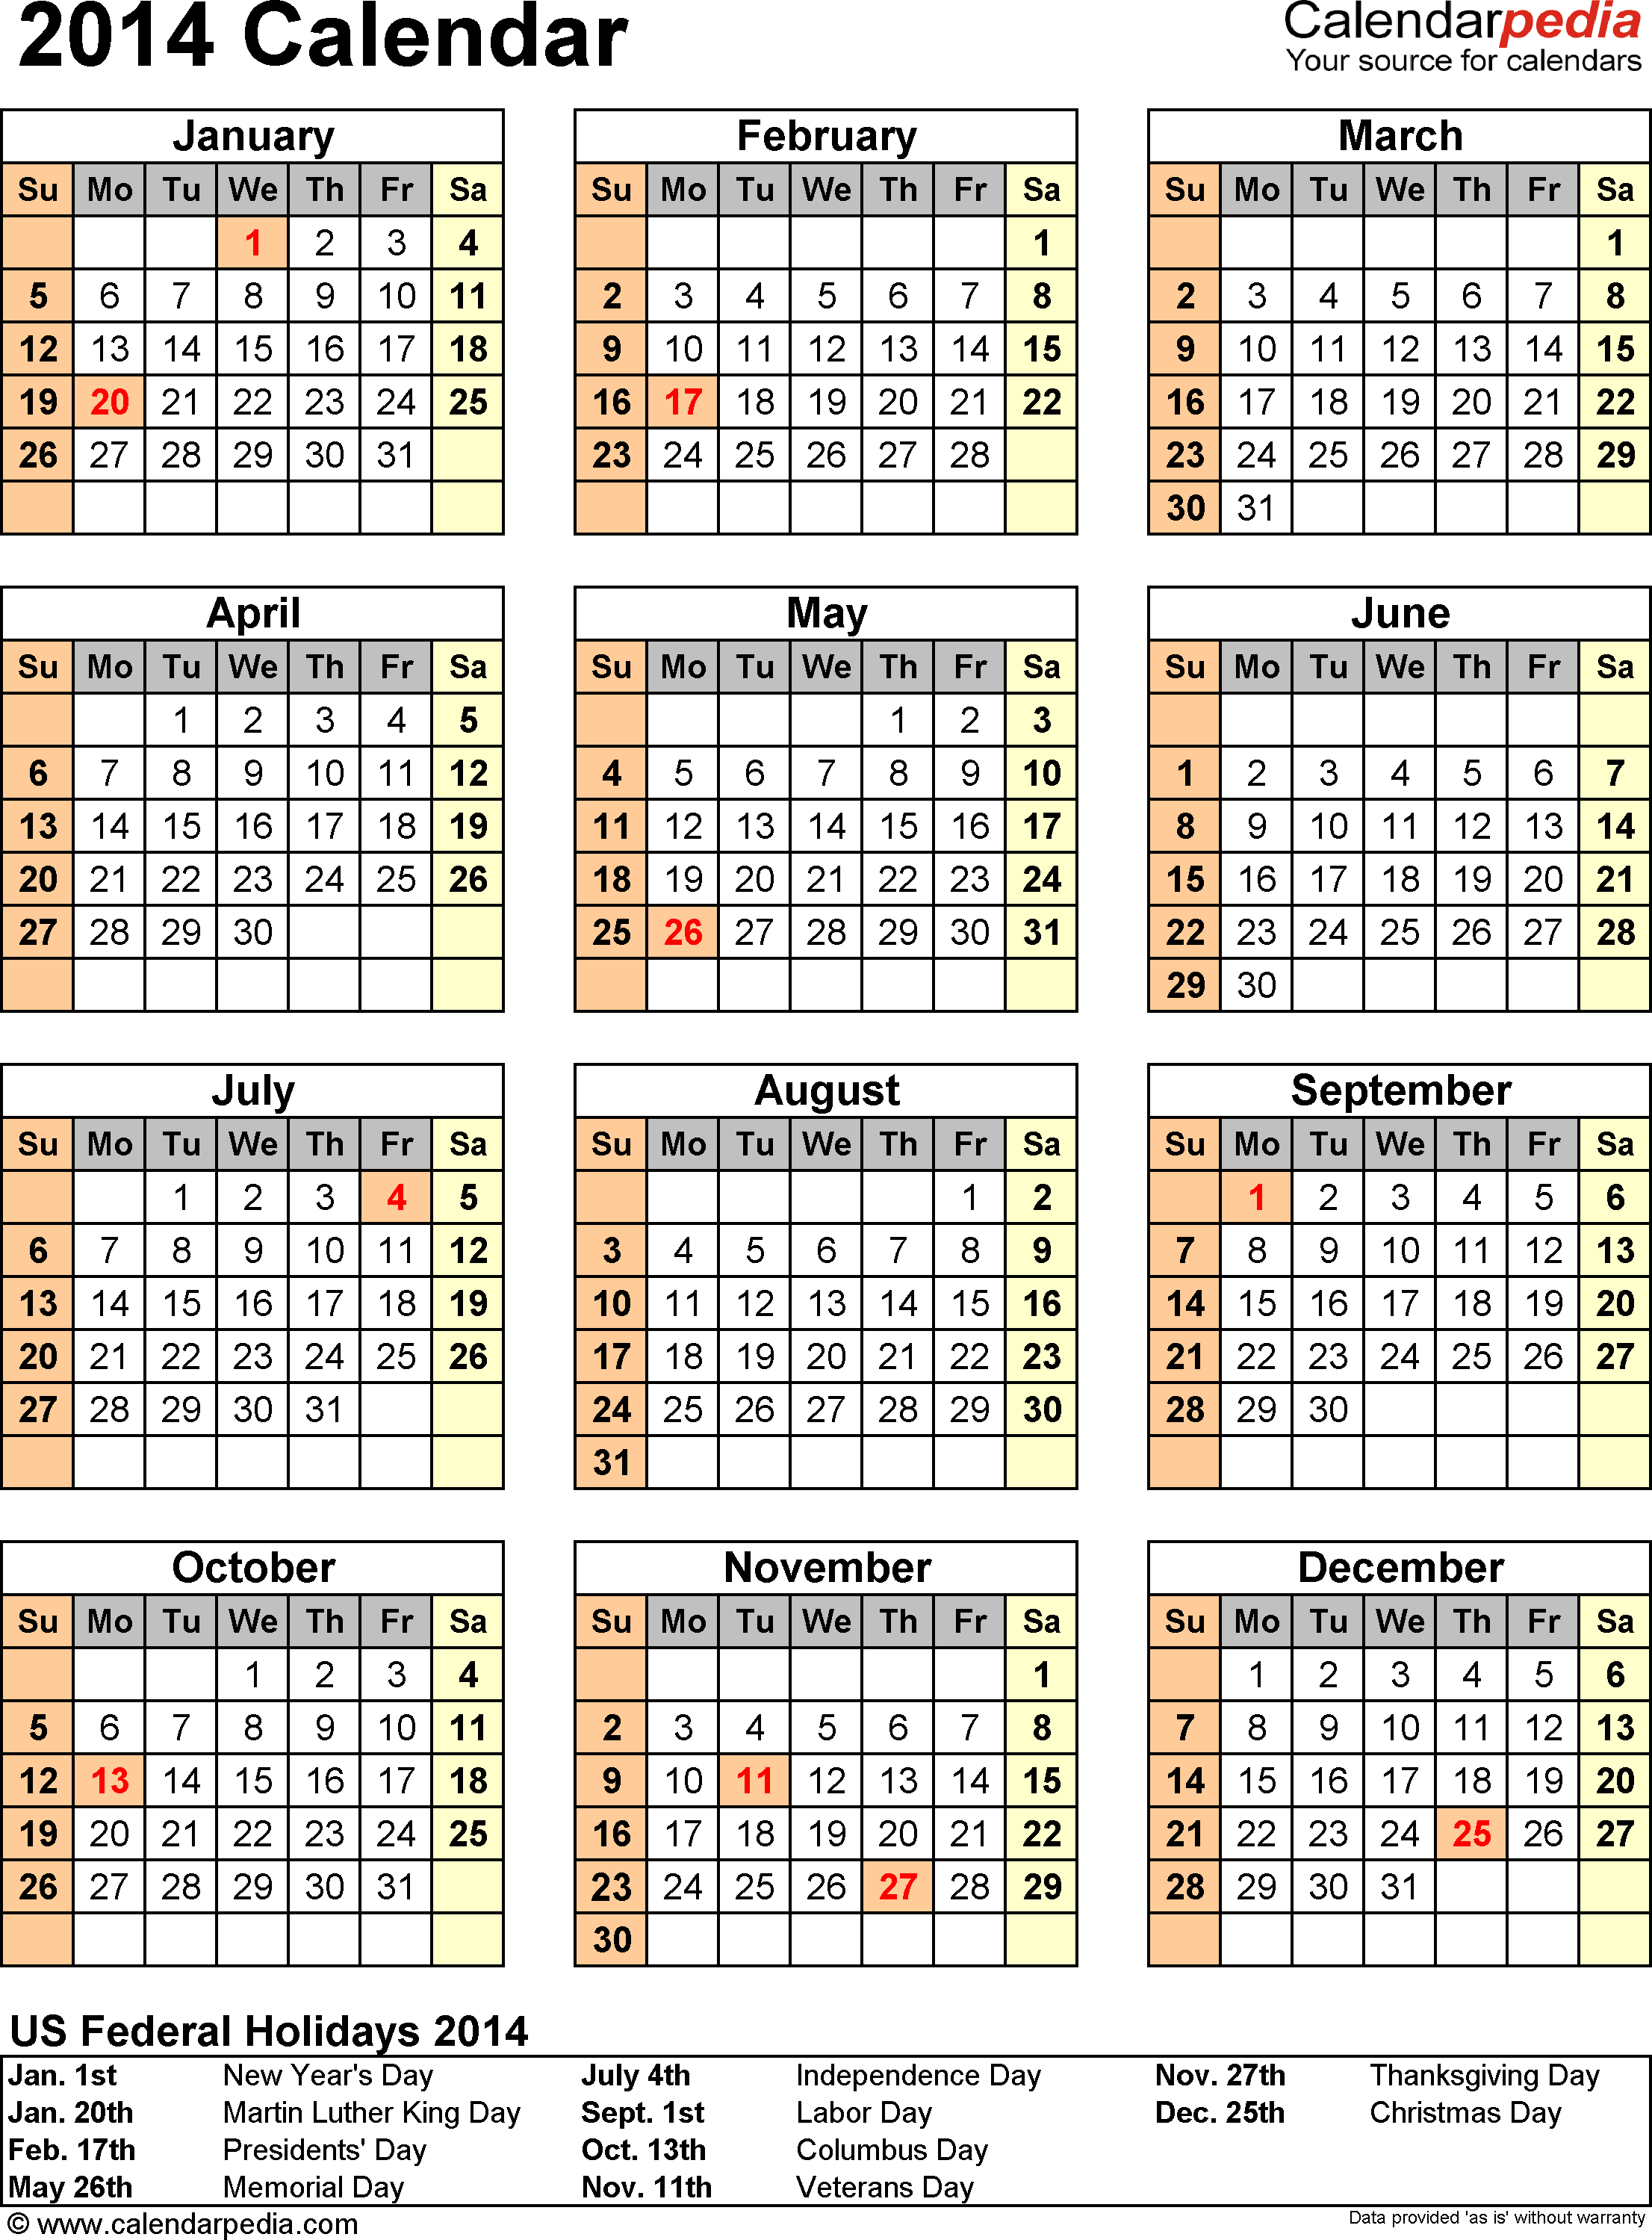 Download Word template for 2014 calendar template 11: Calendar 2014 as Word template, portrait orientation, 1 page, with US federal holidays 2014, paper format: US letter